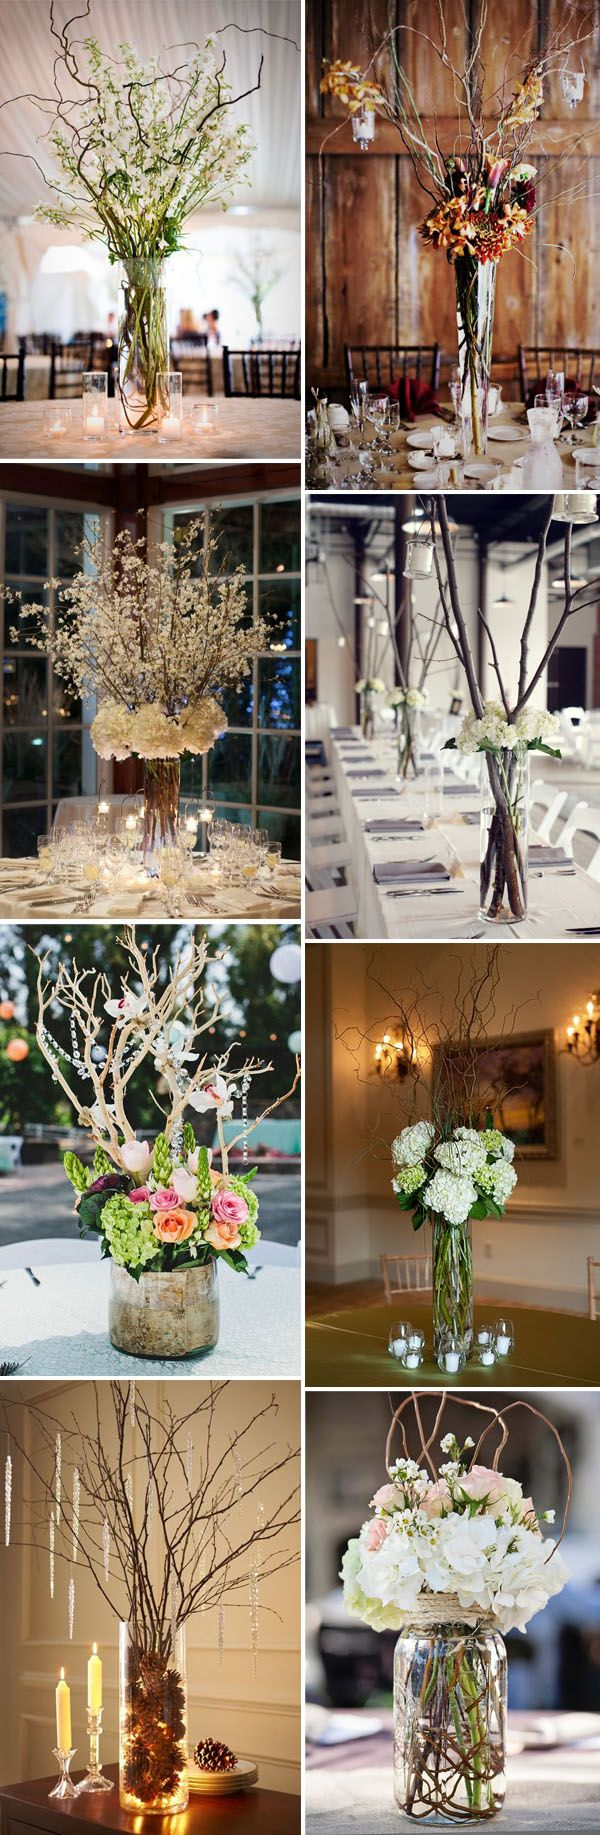 28 creative budget friendly diy wedding decoration ideas easy diy branchtwig and floral vase wedding centerpieces ideas junglespirit Choice Image